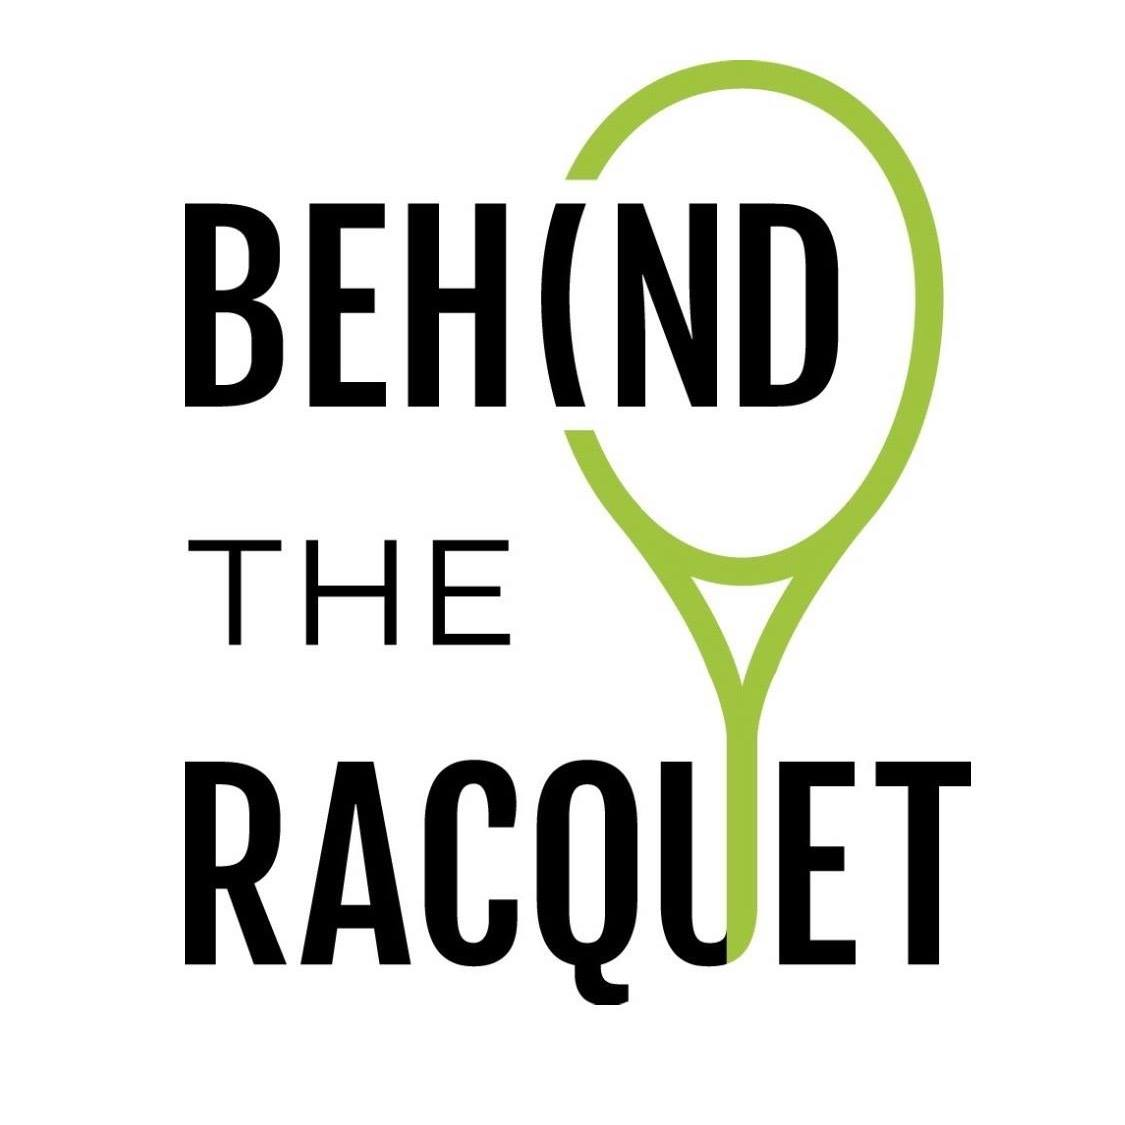 behind the racquet=